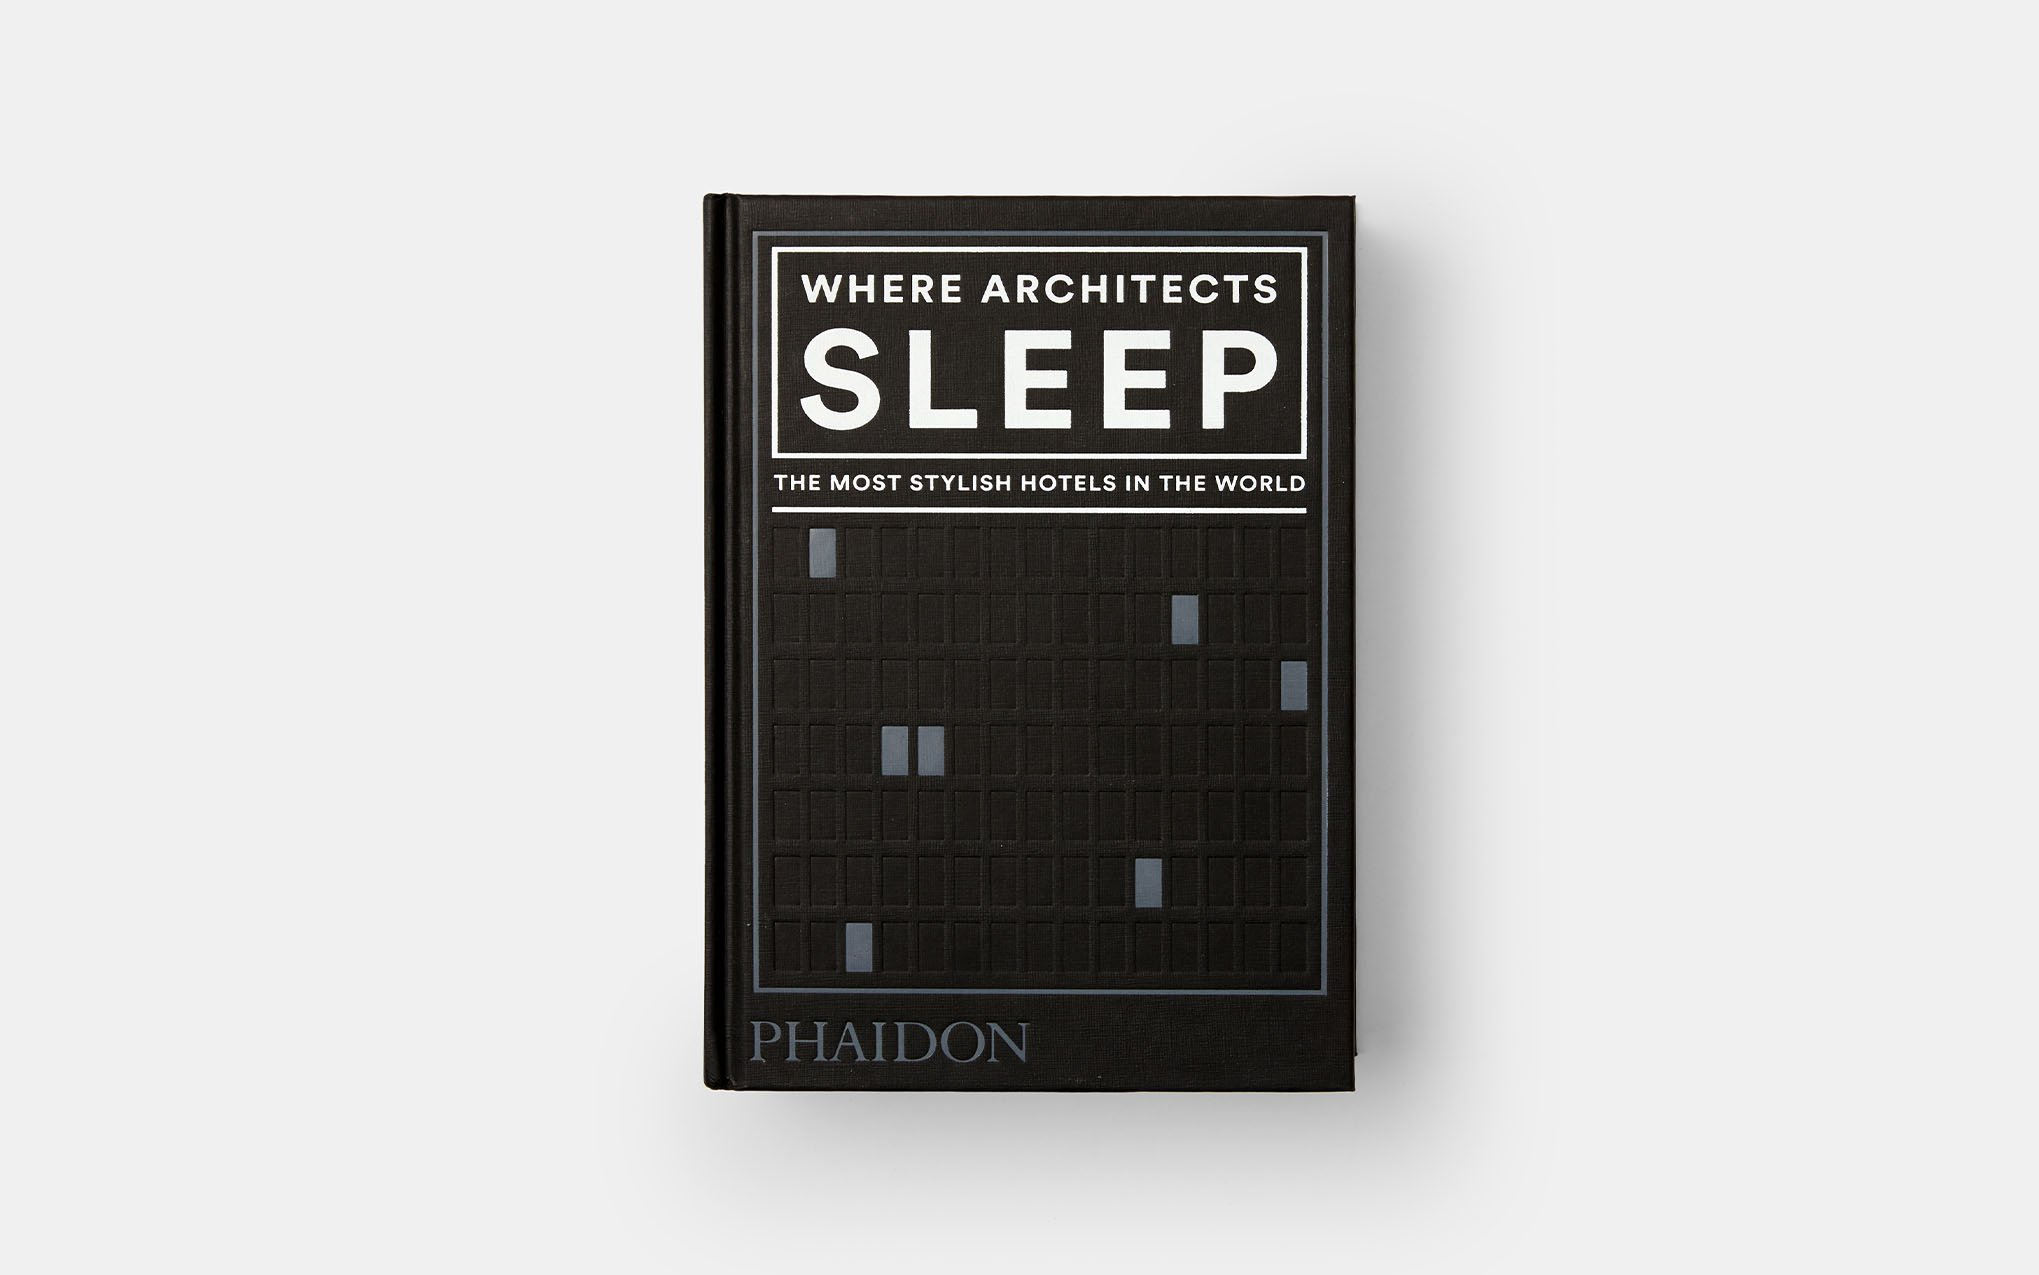 'Where Architects Sleep' recurre a los arquitectos para encontrar el alojamiento perfecto